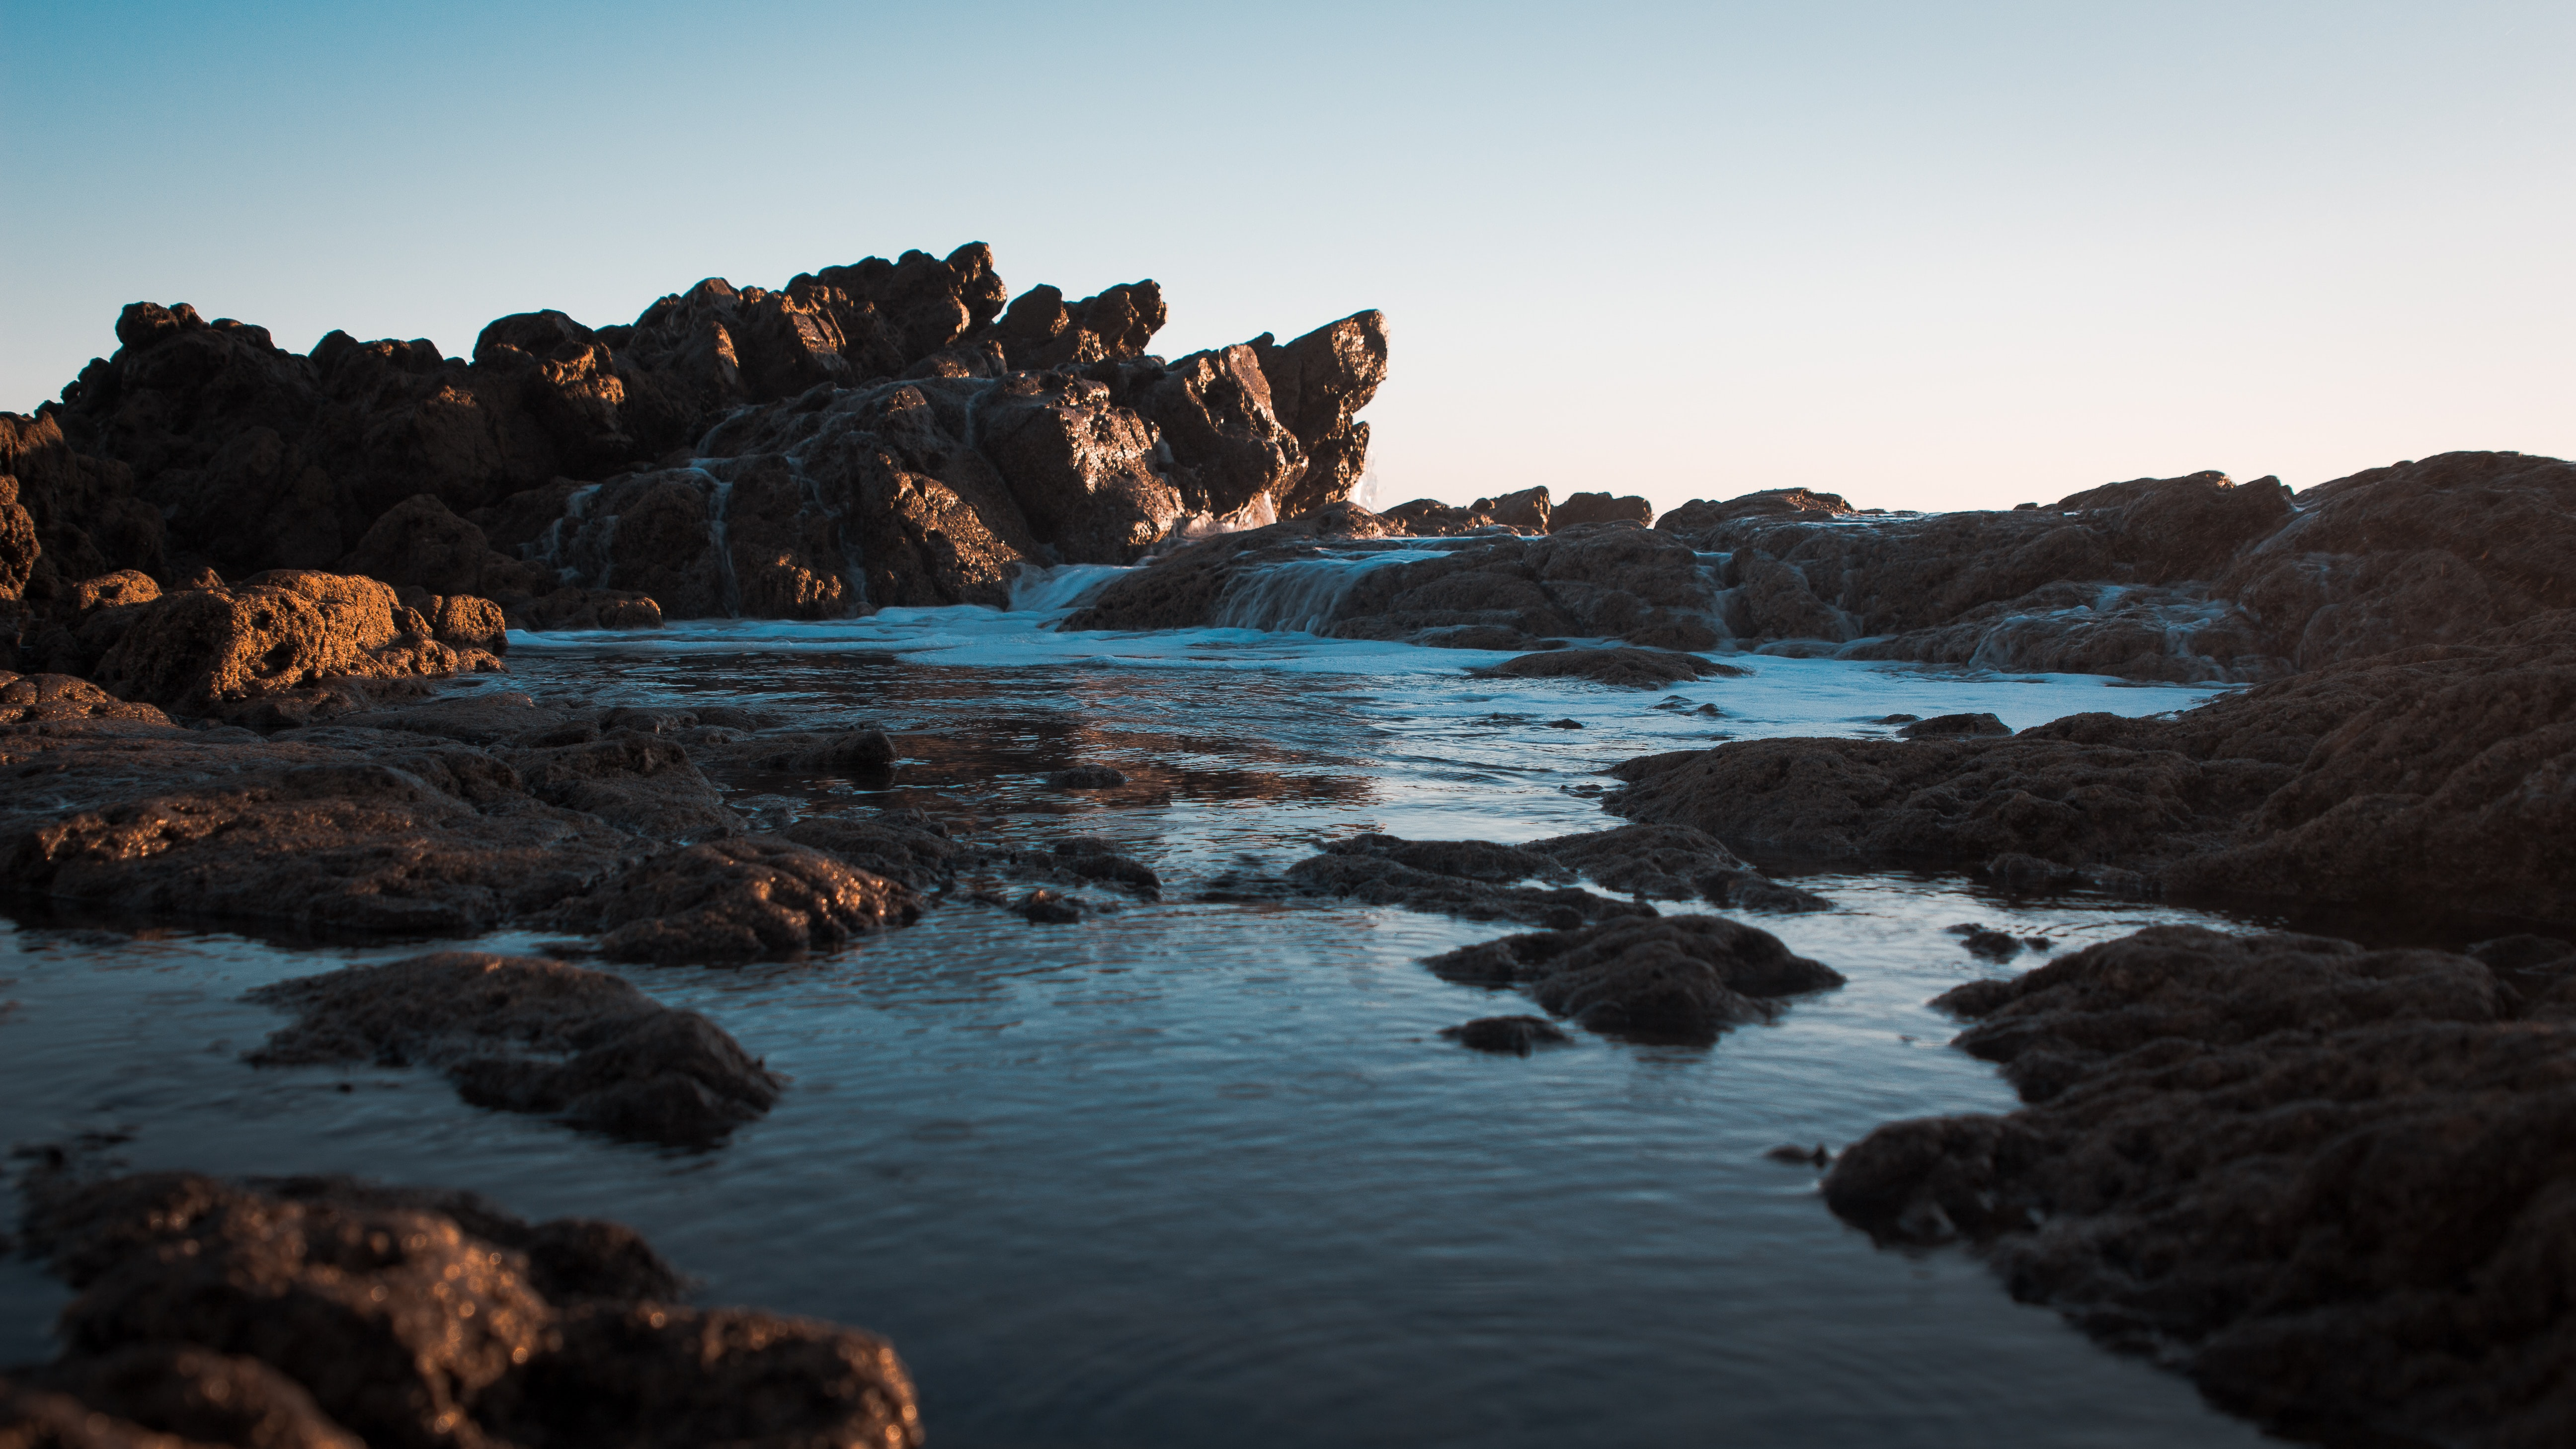 brown rocks and body of water